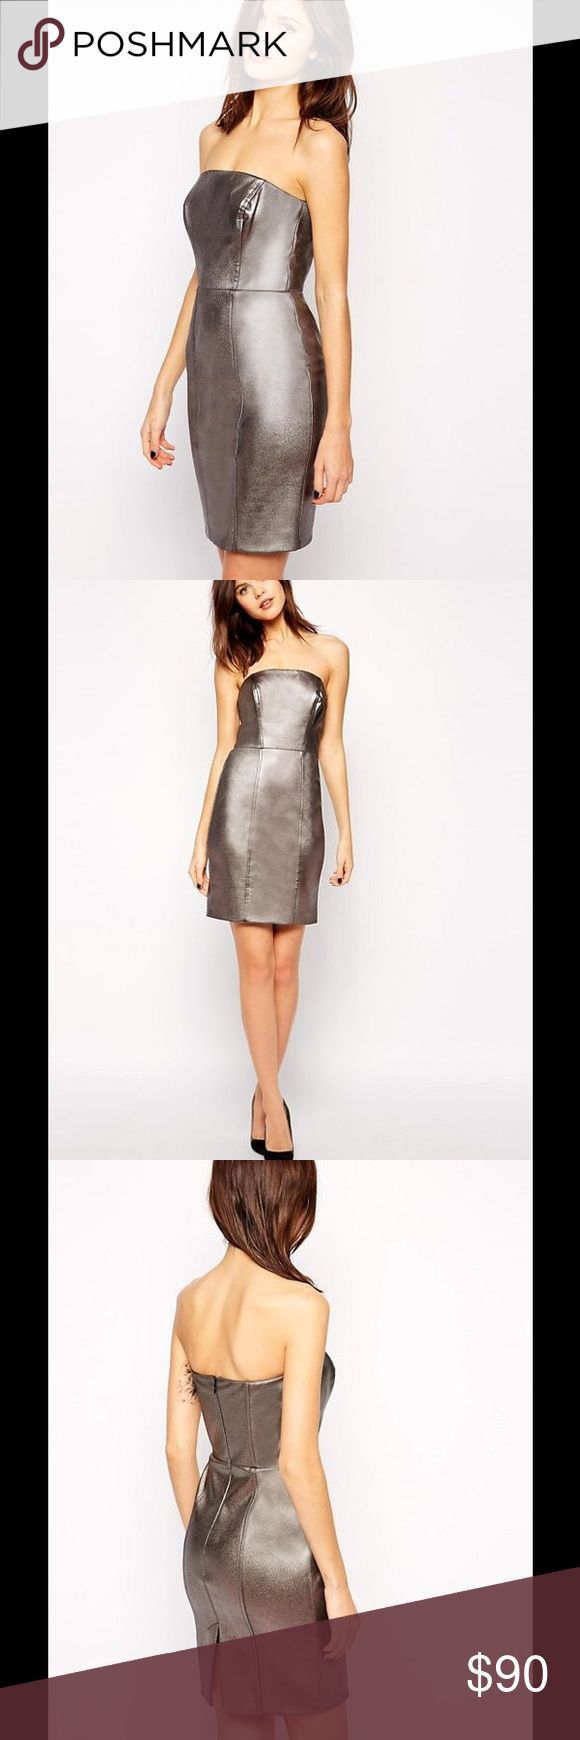 🆕 ❤️Warehouse silver bodycon dress❤️ NWT US(4)🌹 Strapless silver dress, UK(8) US(4) fits like XS 👗brand new✨ NEVER USED Warehouse Dresses Strapless